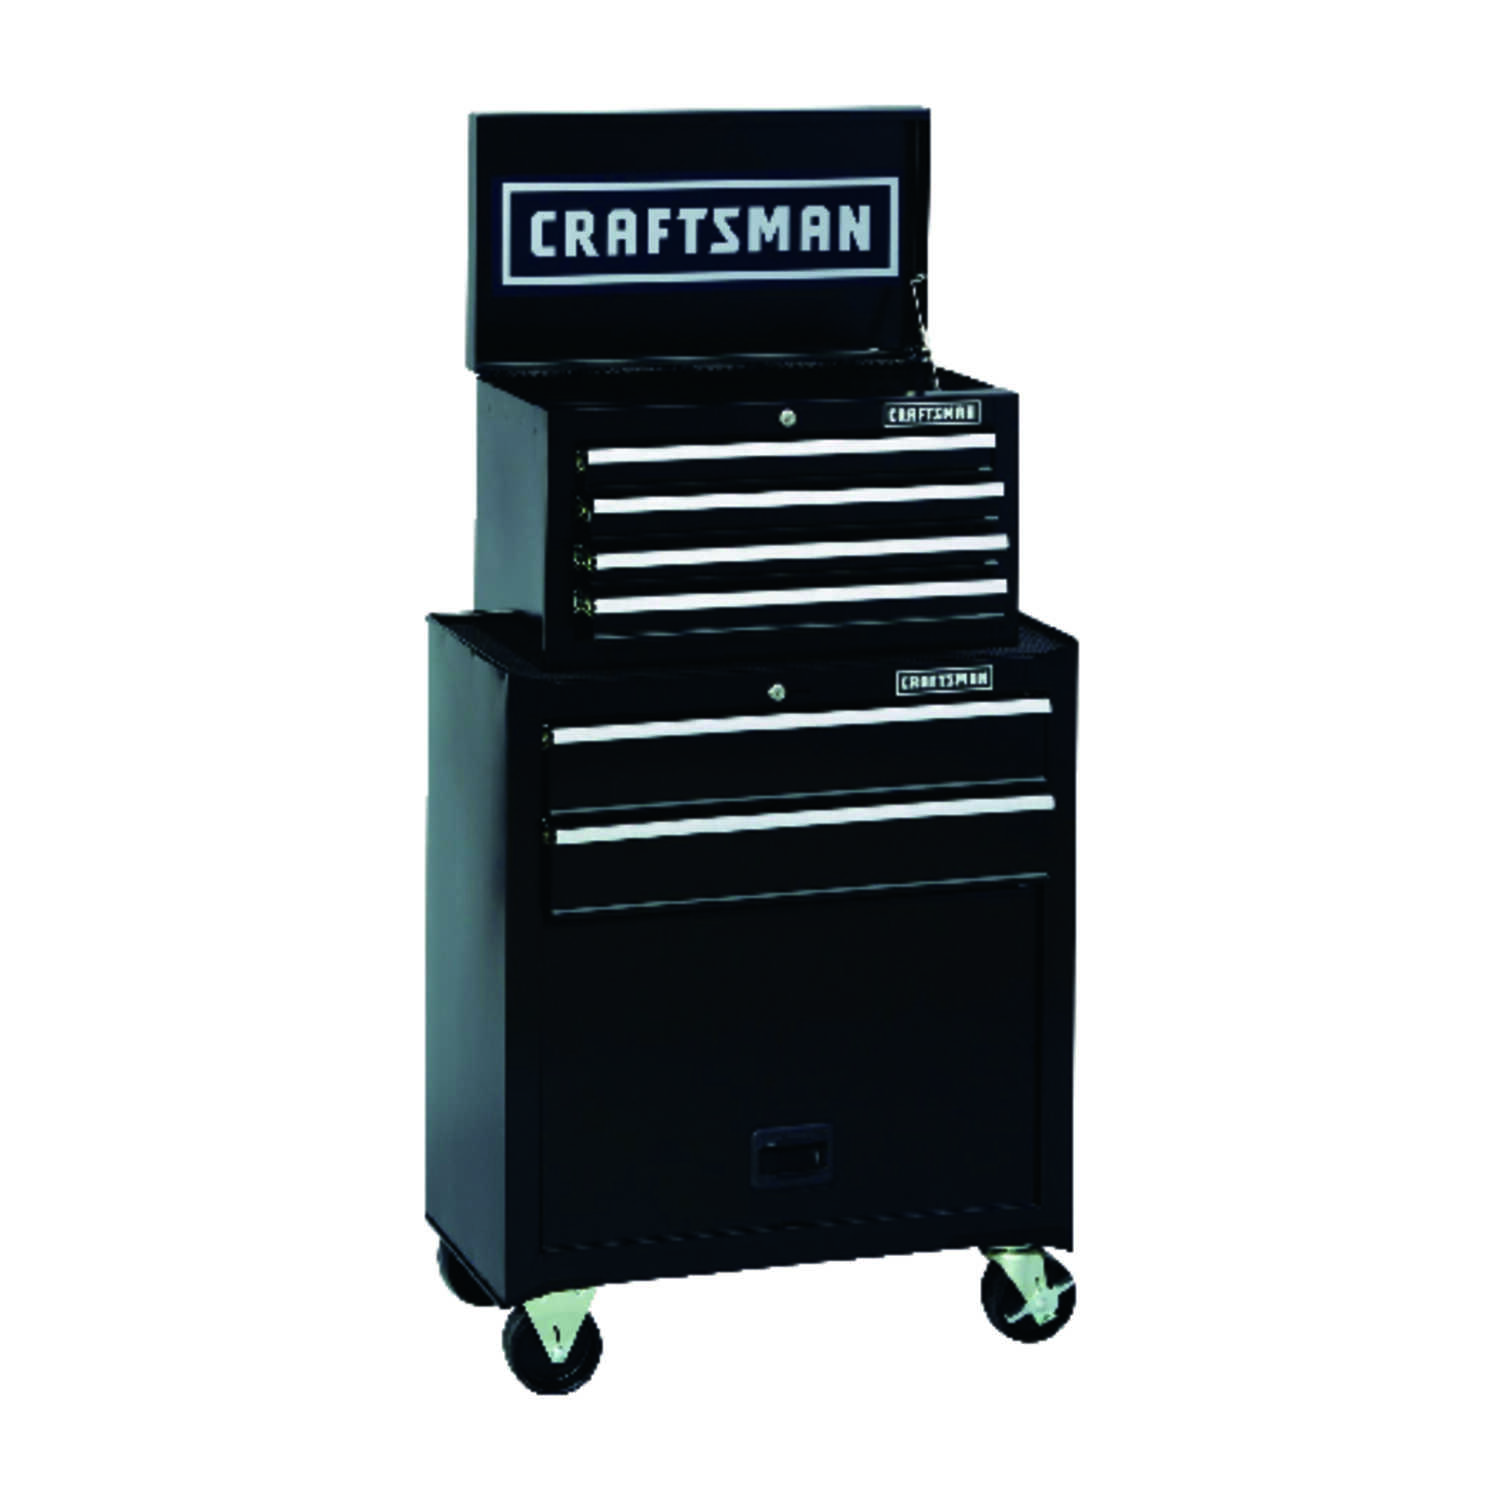 Craftsman 26 5 in  6 drawer Steel Rolling Tool Cabinet 44 25 in  H x